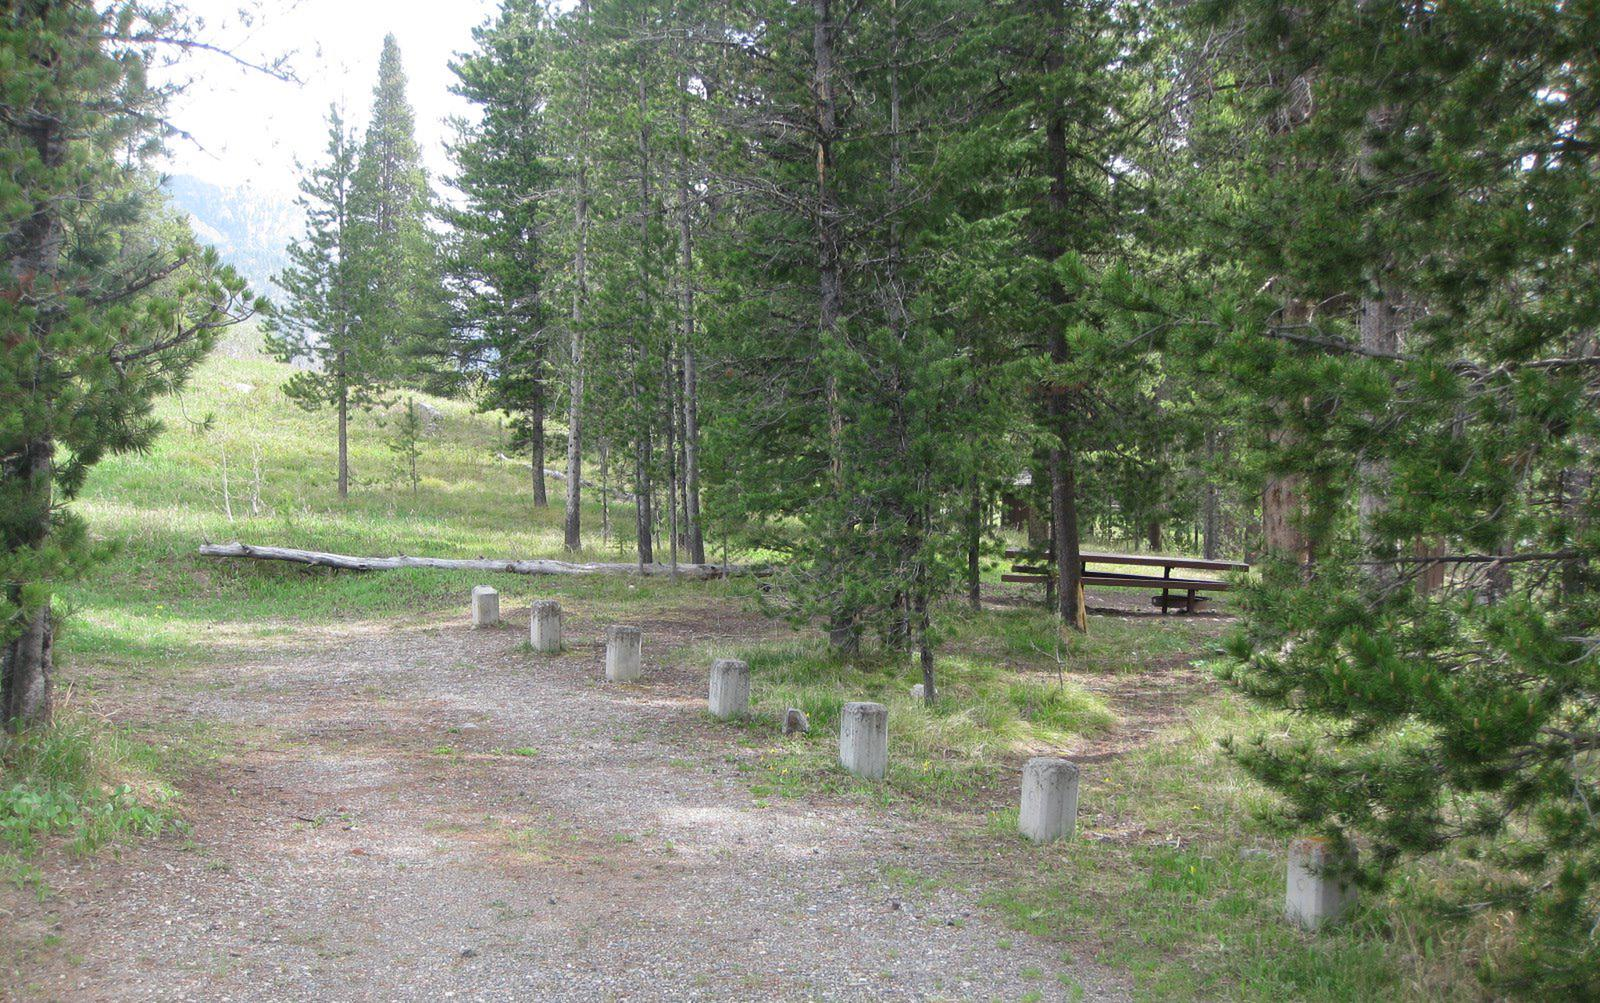 Site A4, campsite surrounded by pine trees, picnic table & fire ringSite A4